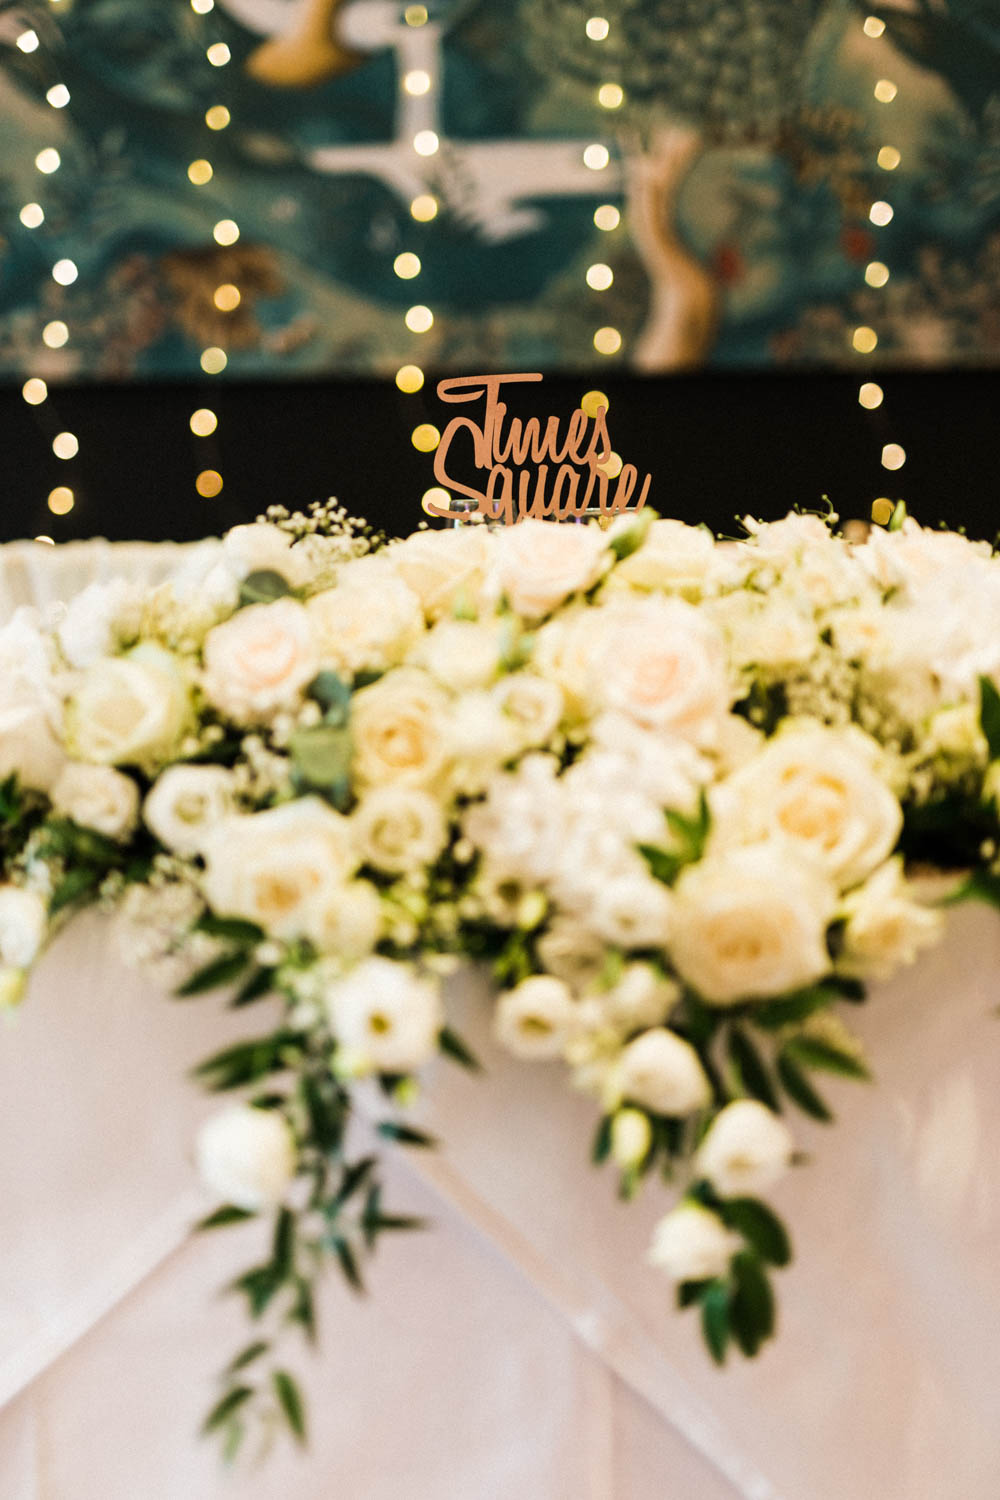 Special-Day-Photography-The-Manor-House-Hotel-Moreton-in-Marsh-Moreton-In-Marsh-Summer-Wedding-Wedding-reception-detail-tableplaces.jpg